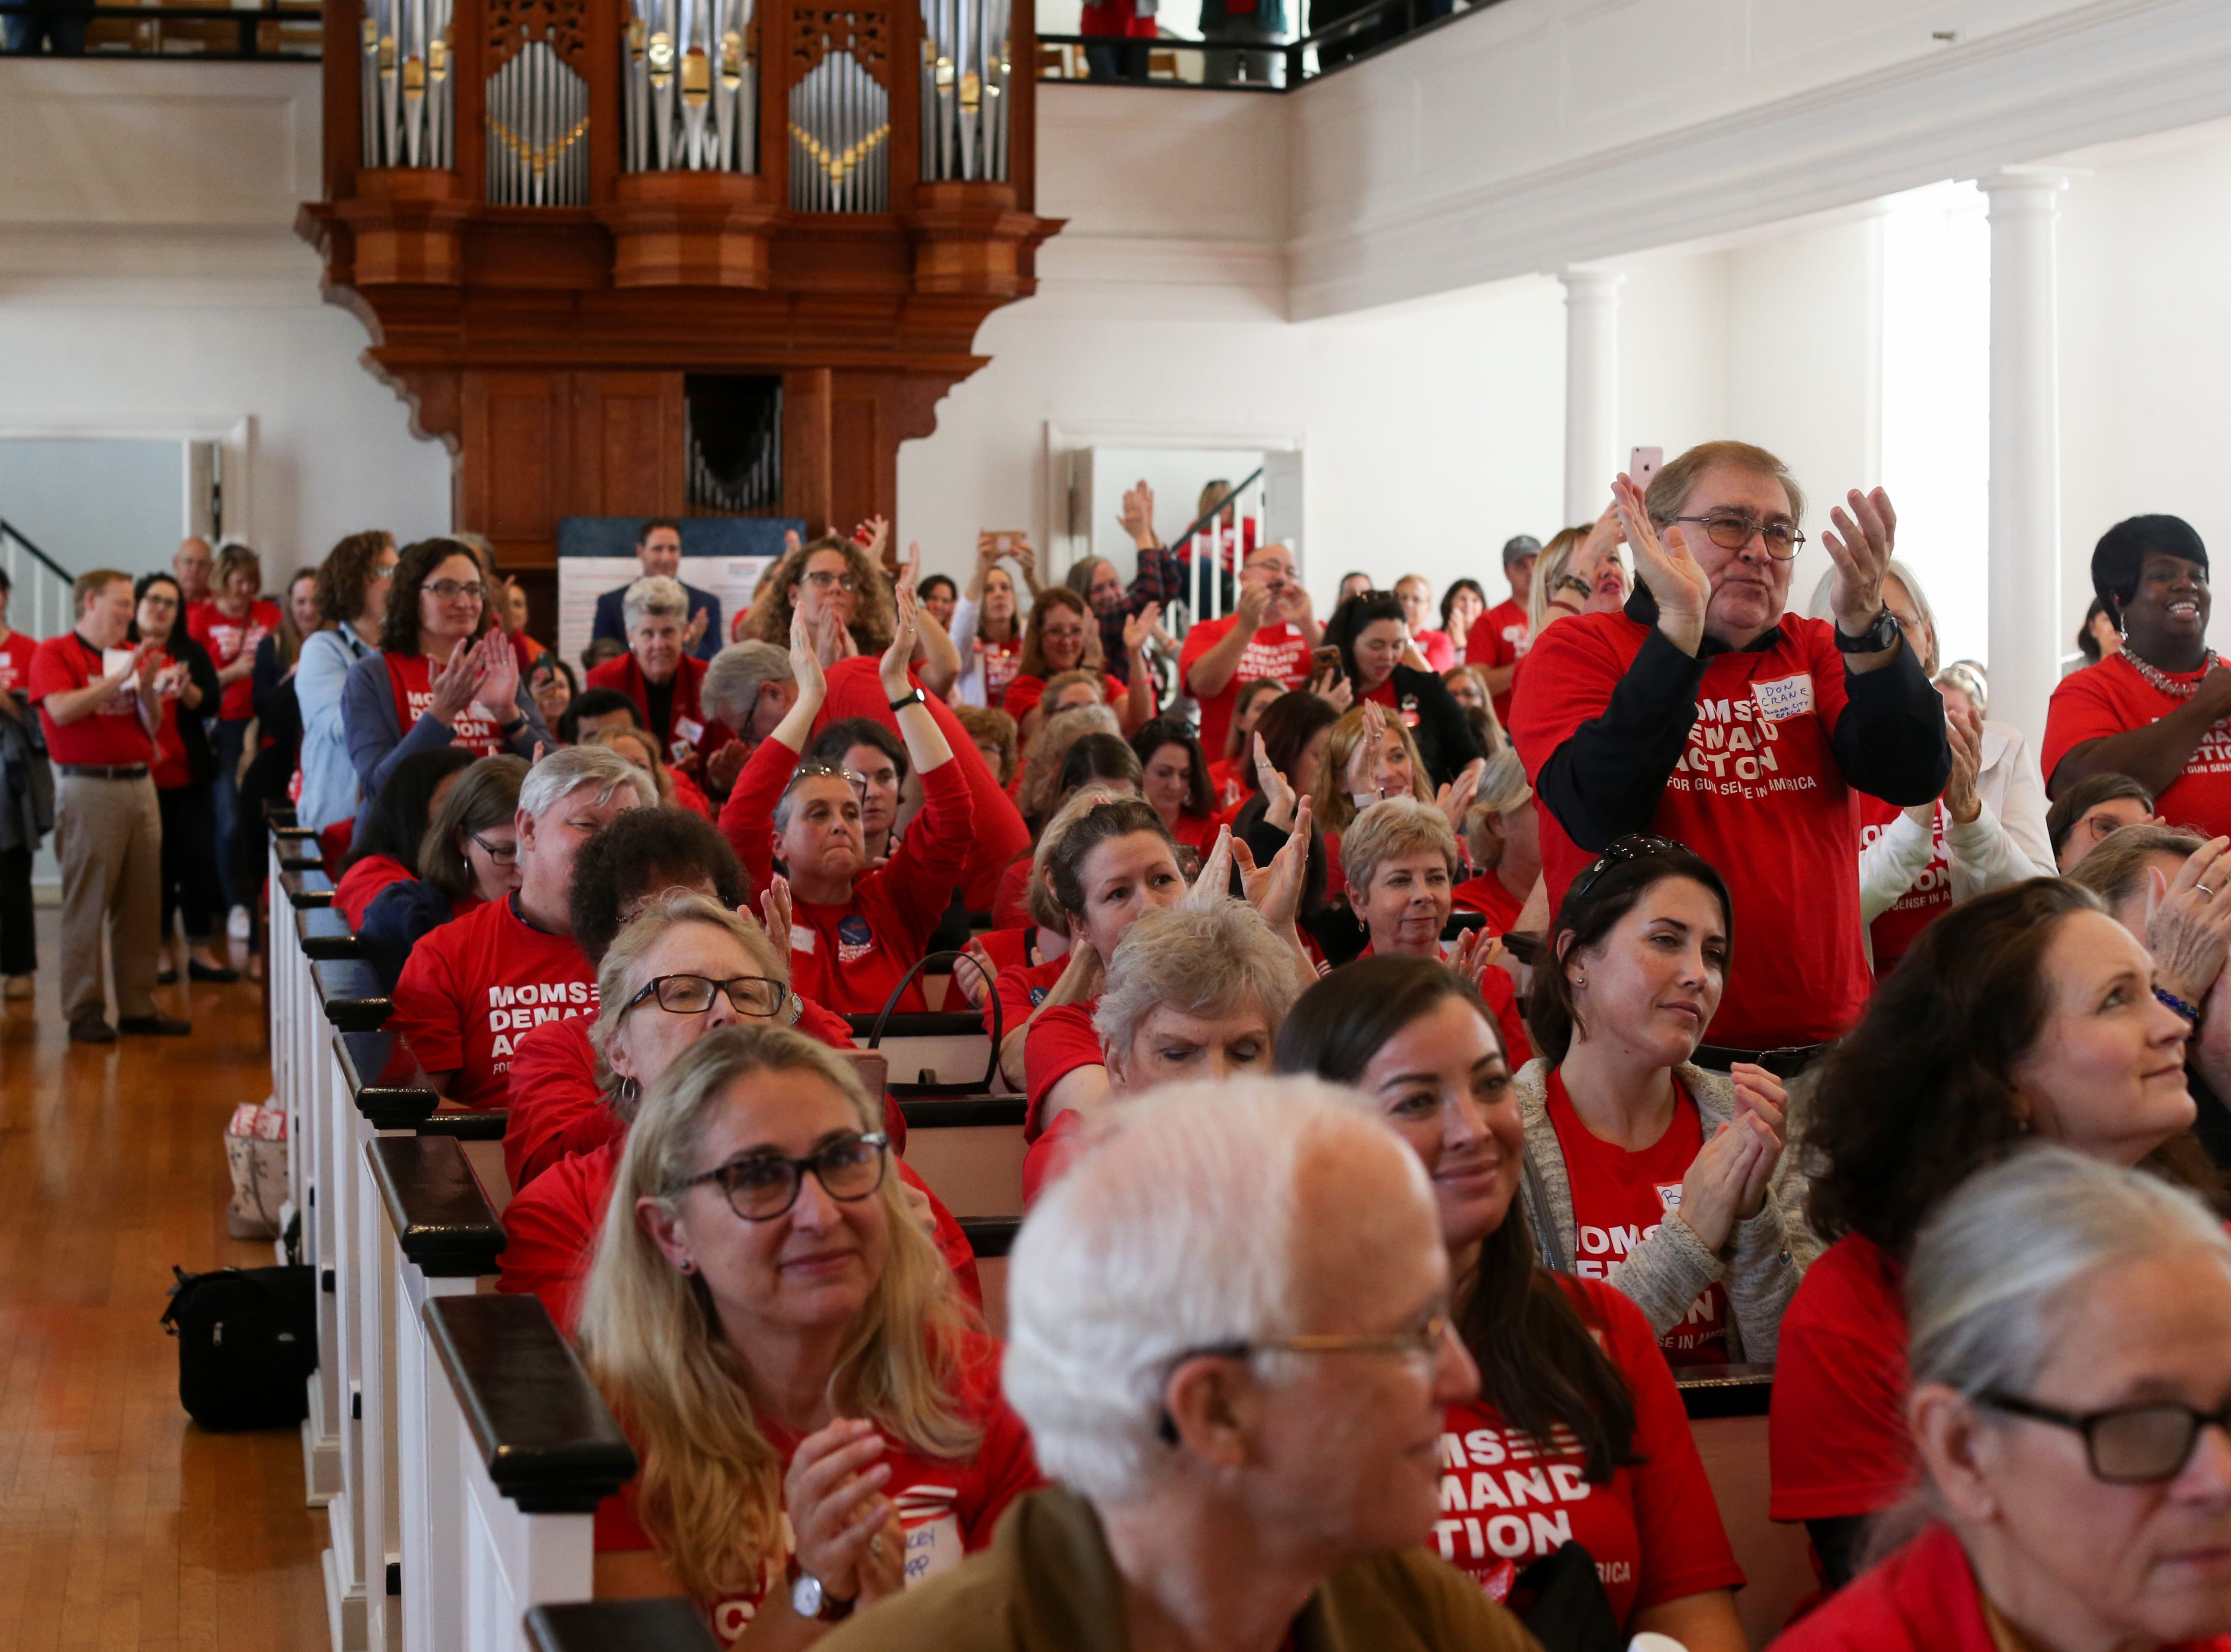 """The crowd gives a standing ovation for Agriculture Commissioner Nikki Fried as she addresses over 500 activists from Moms Demand Action gathered at First Presbyterian Church in Tallahassee. """"The NRA is no longer in charge of the Department of Agriculture,"""" Fried said."""